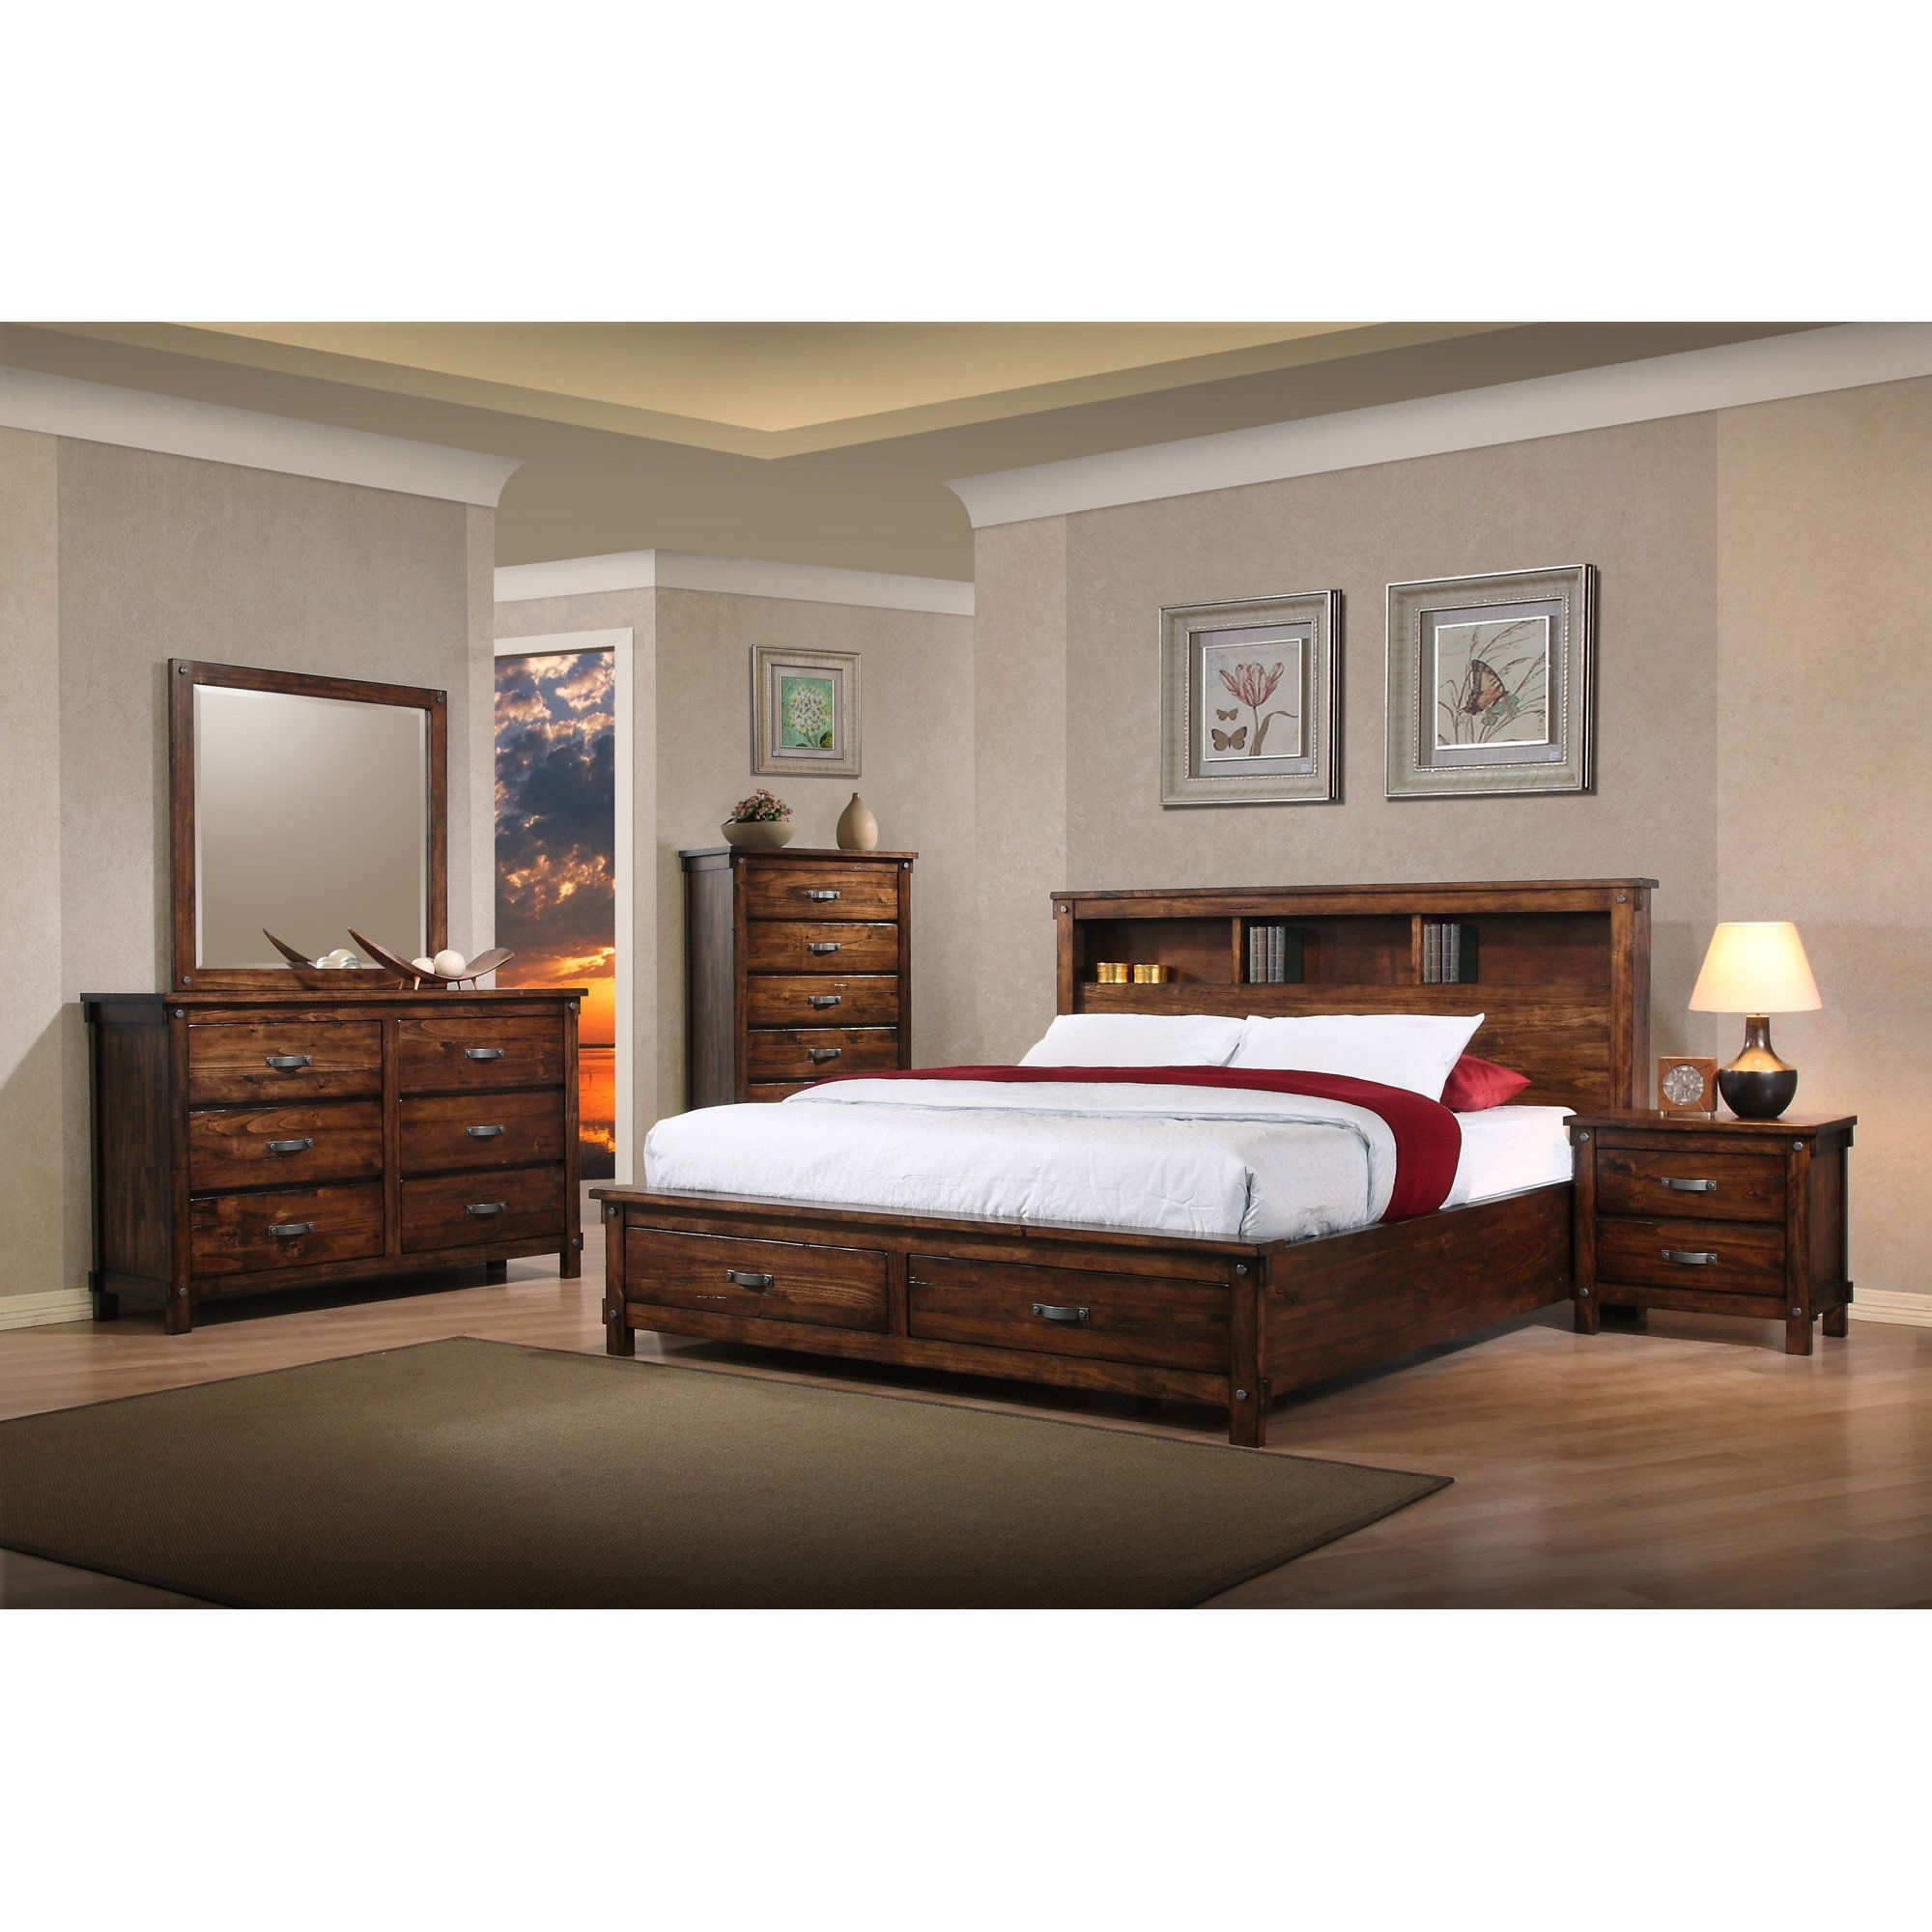 Rustic Classic Brown 4 Piece King Bedroom Set Jessie With Images Italian Bedroom Furniture King Bedroom Furniture Bedroom Set